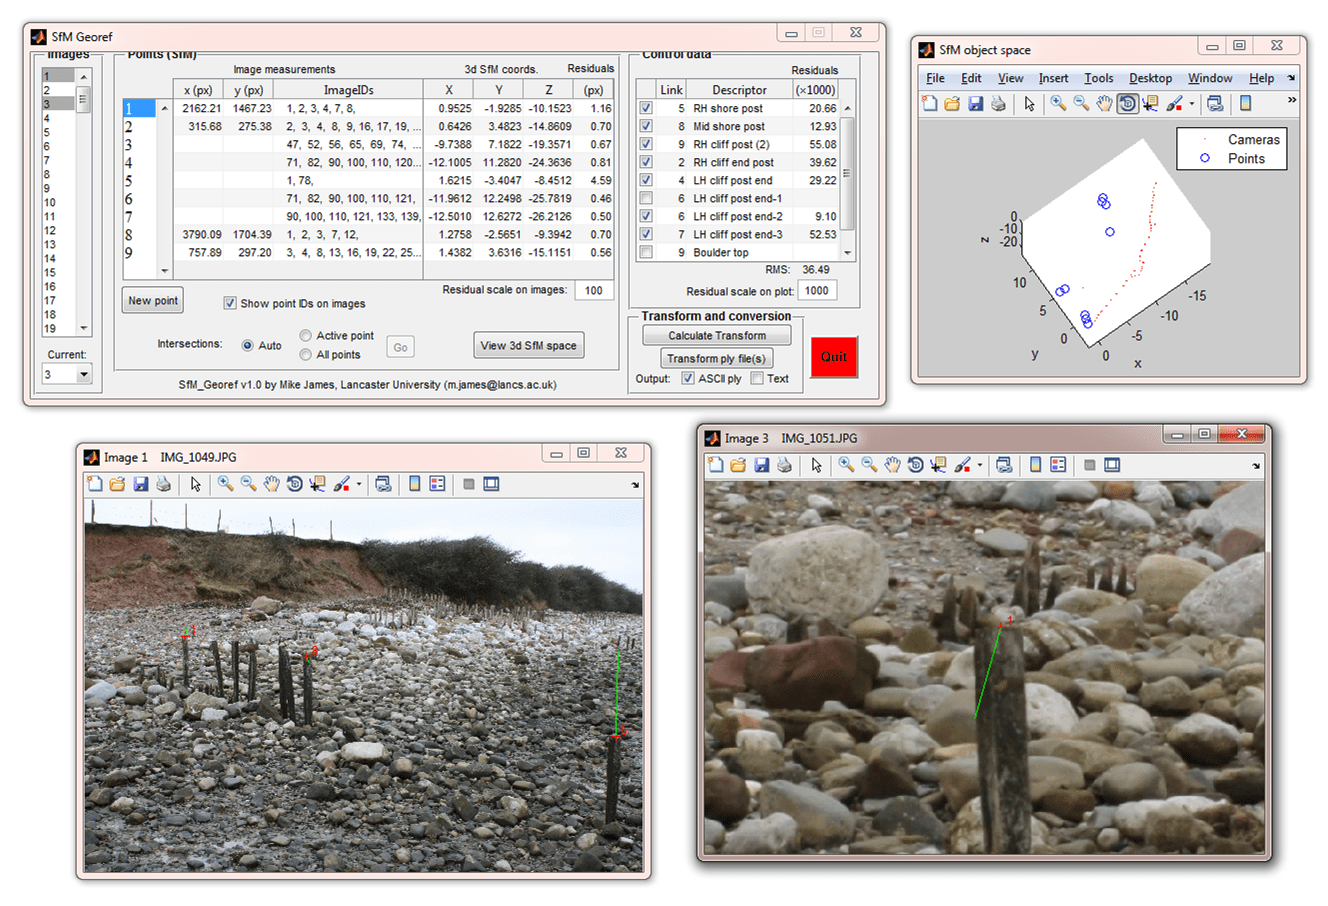 Screen shots of georeferencing interface for sfm_georef